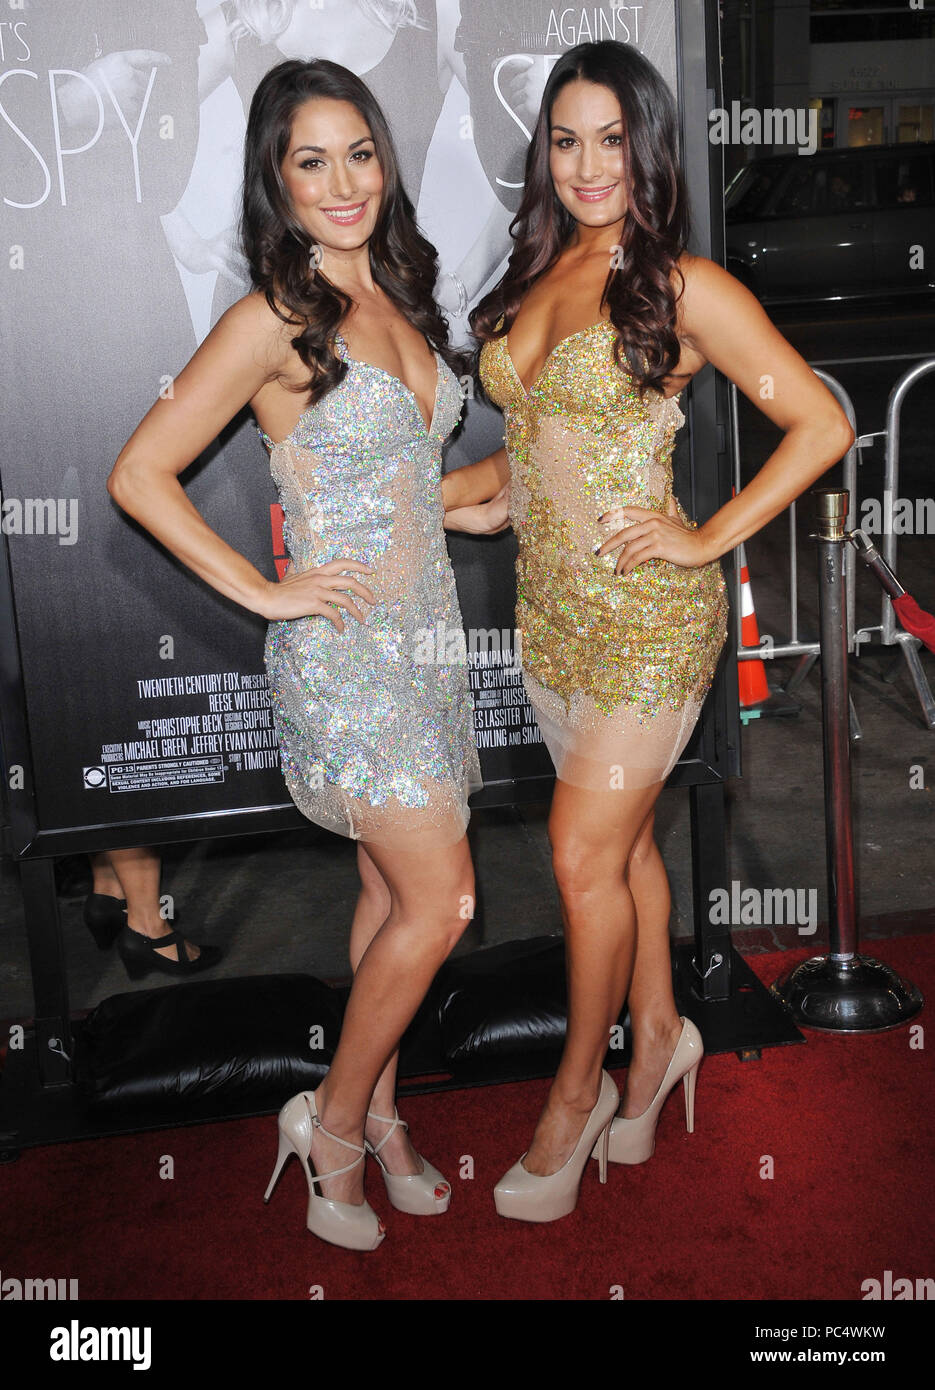 Feet The Bella Twins nudes (96 photos), Topless, Hot, Boobs, braless 2020